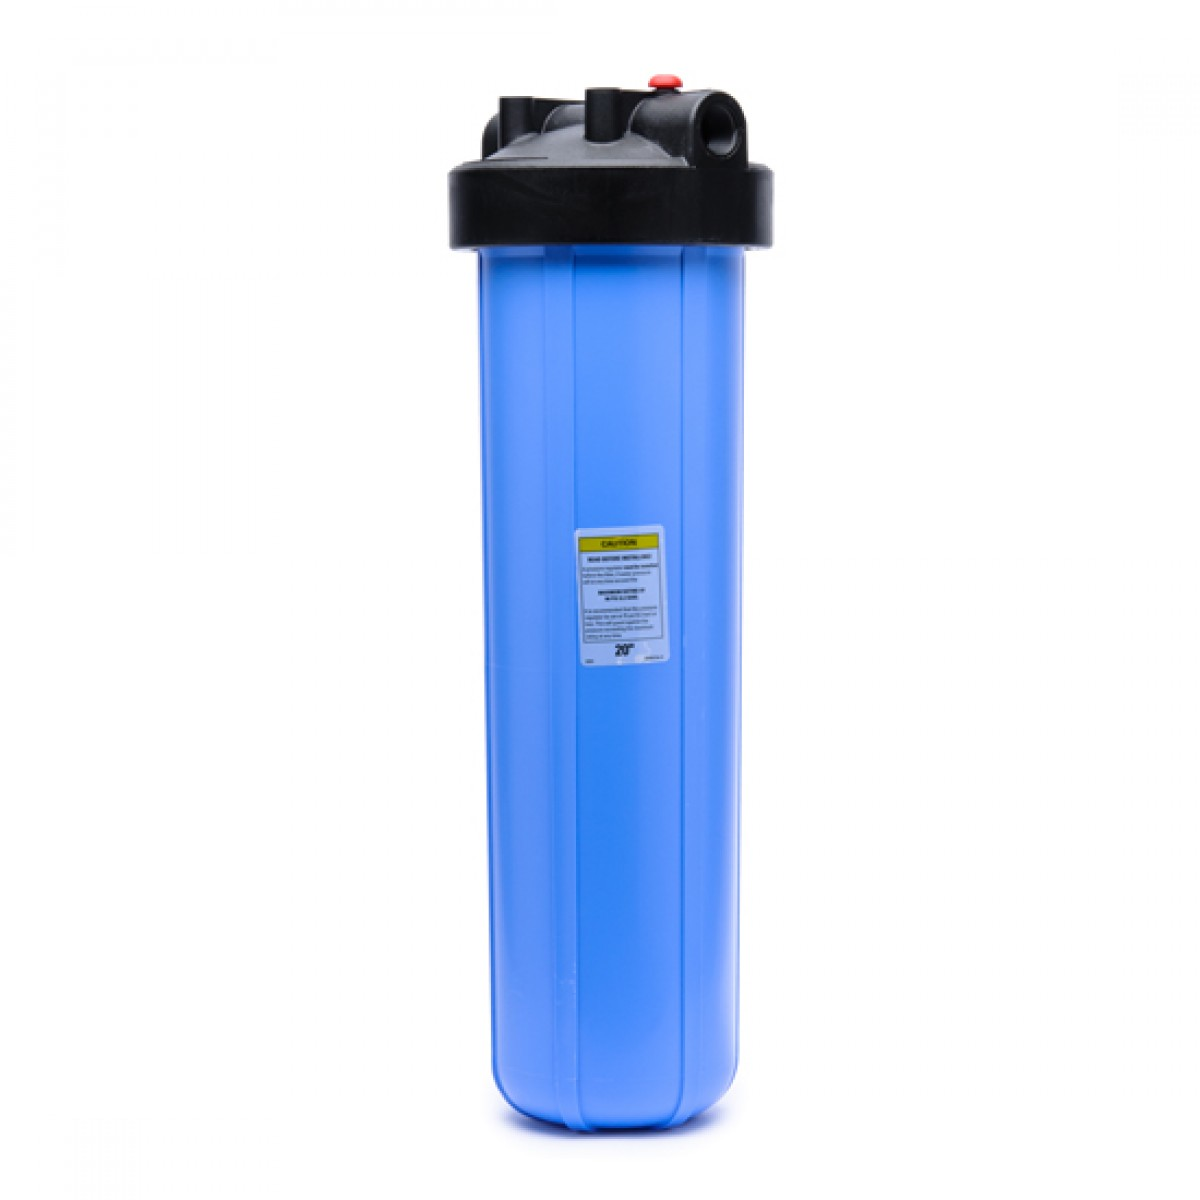 big blue whole house water filter system